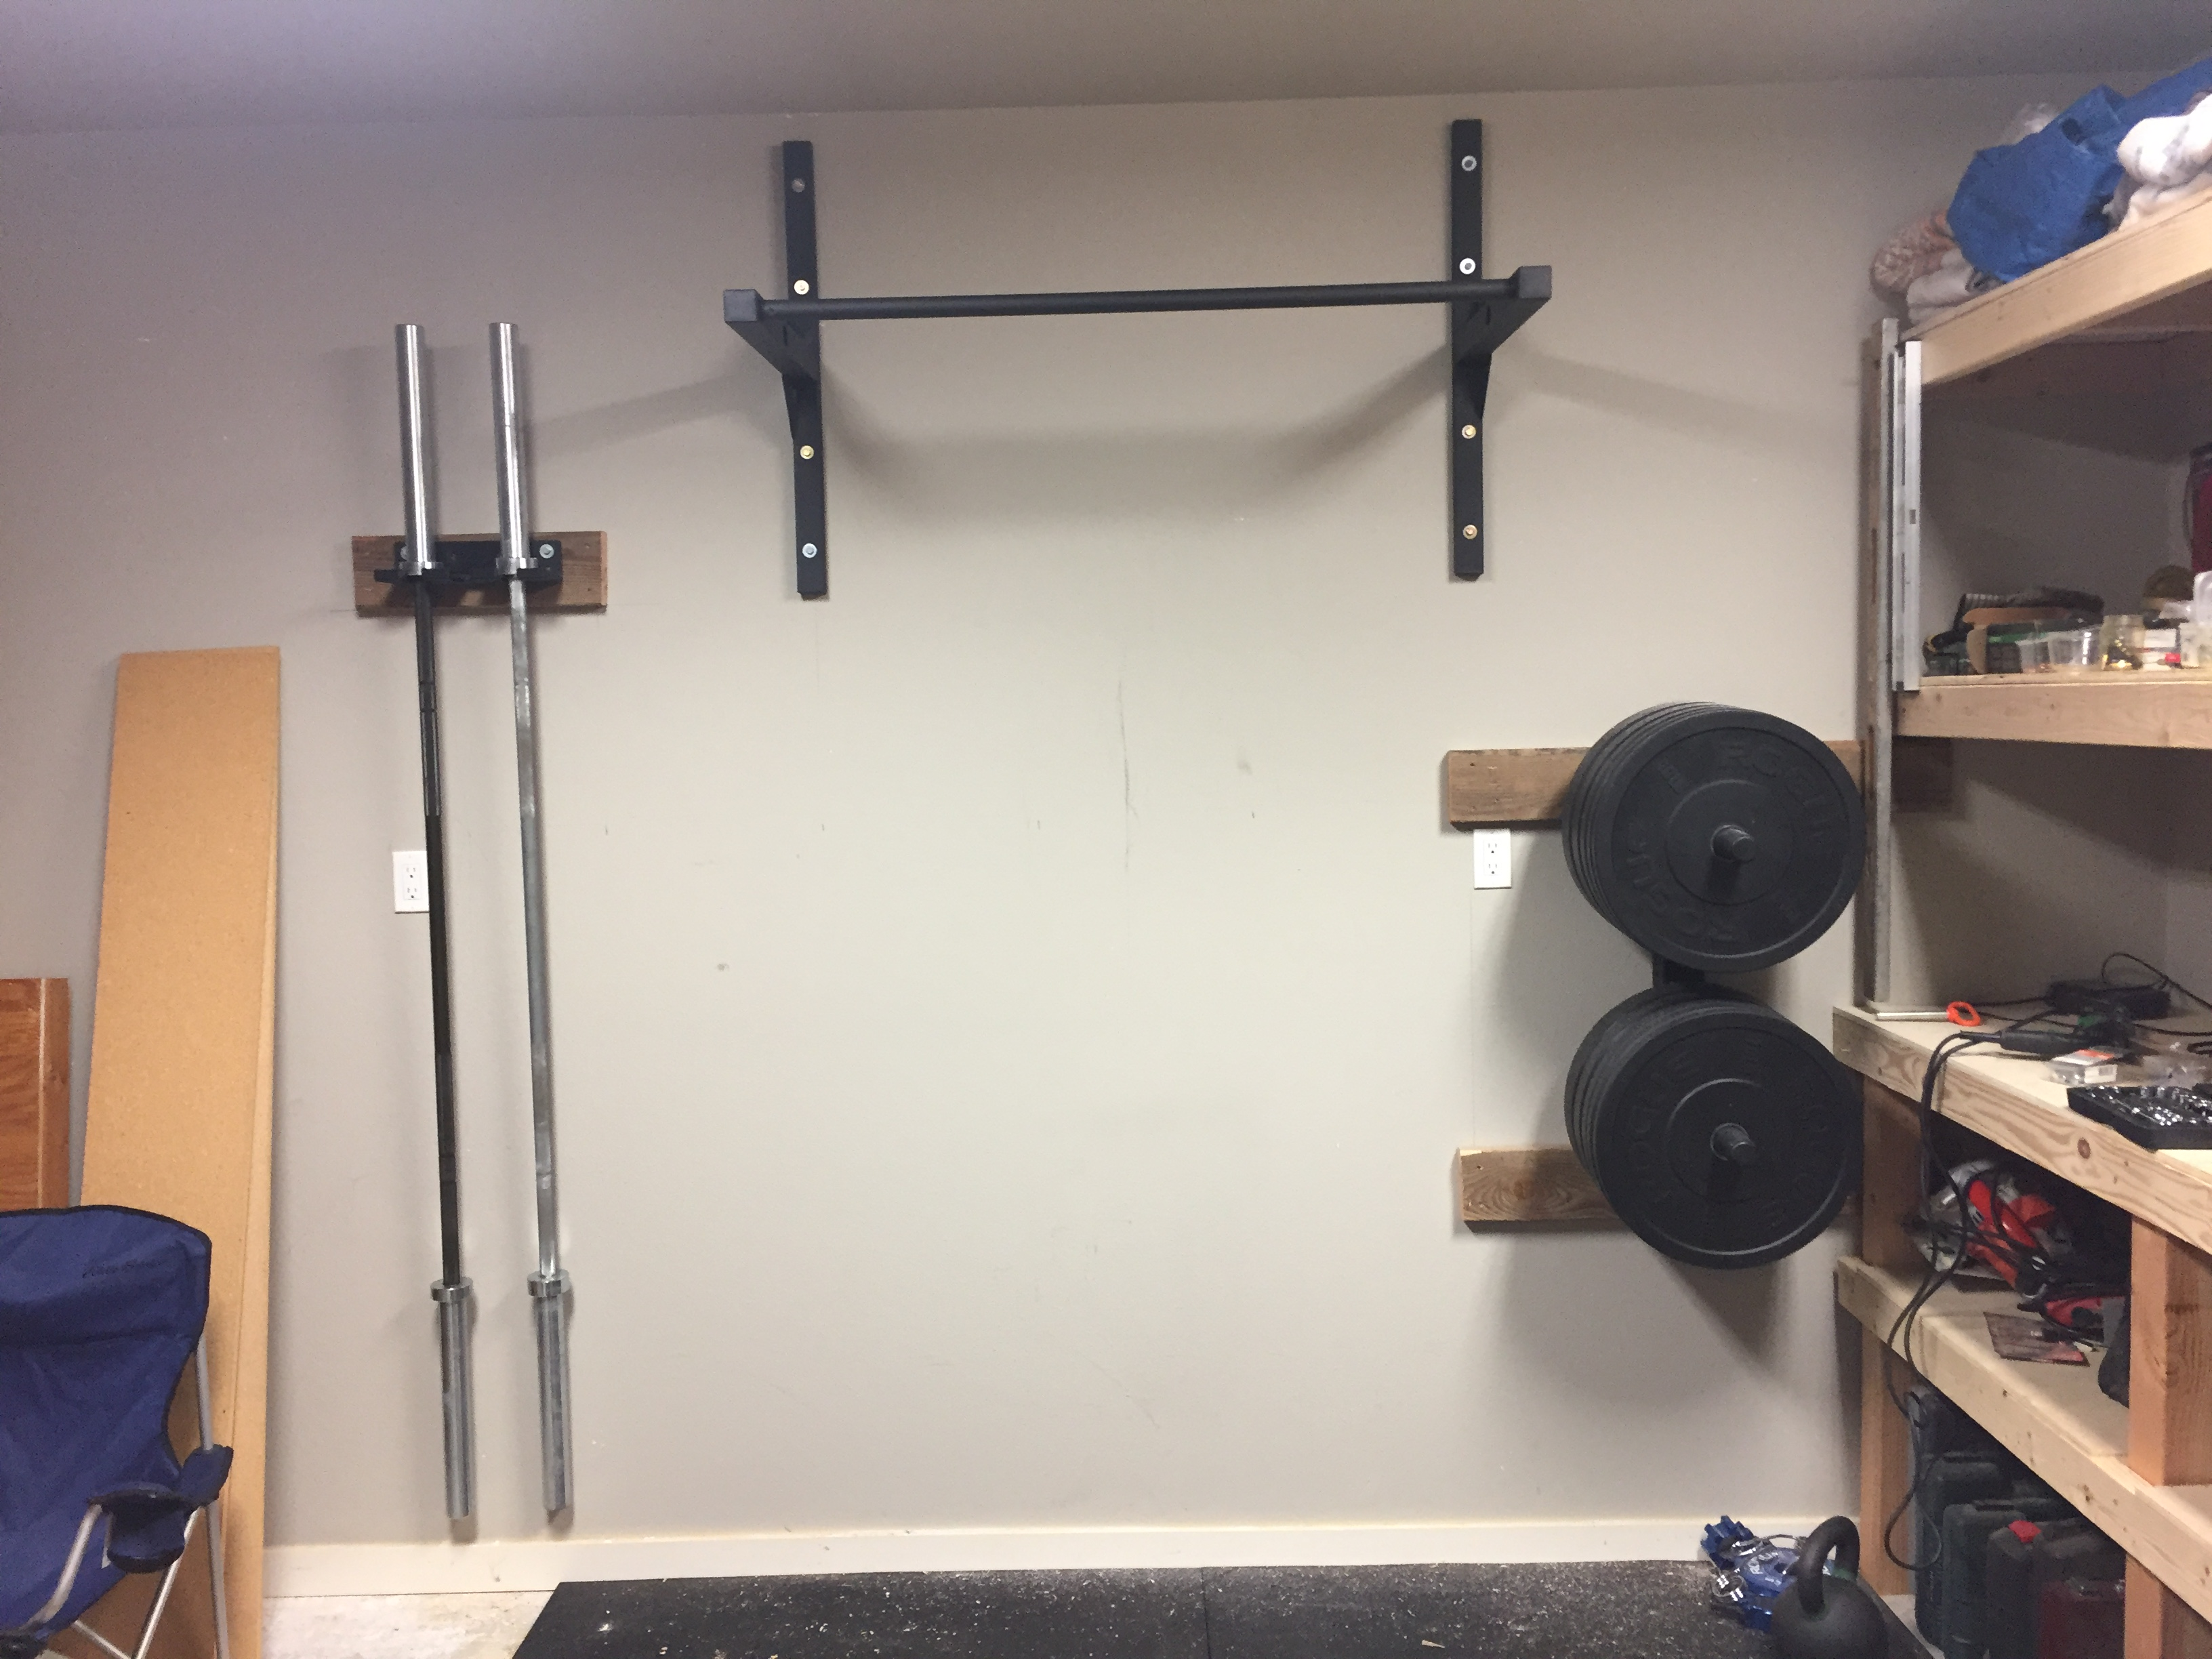 Rogue fitness w garage gym review barbend